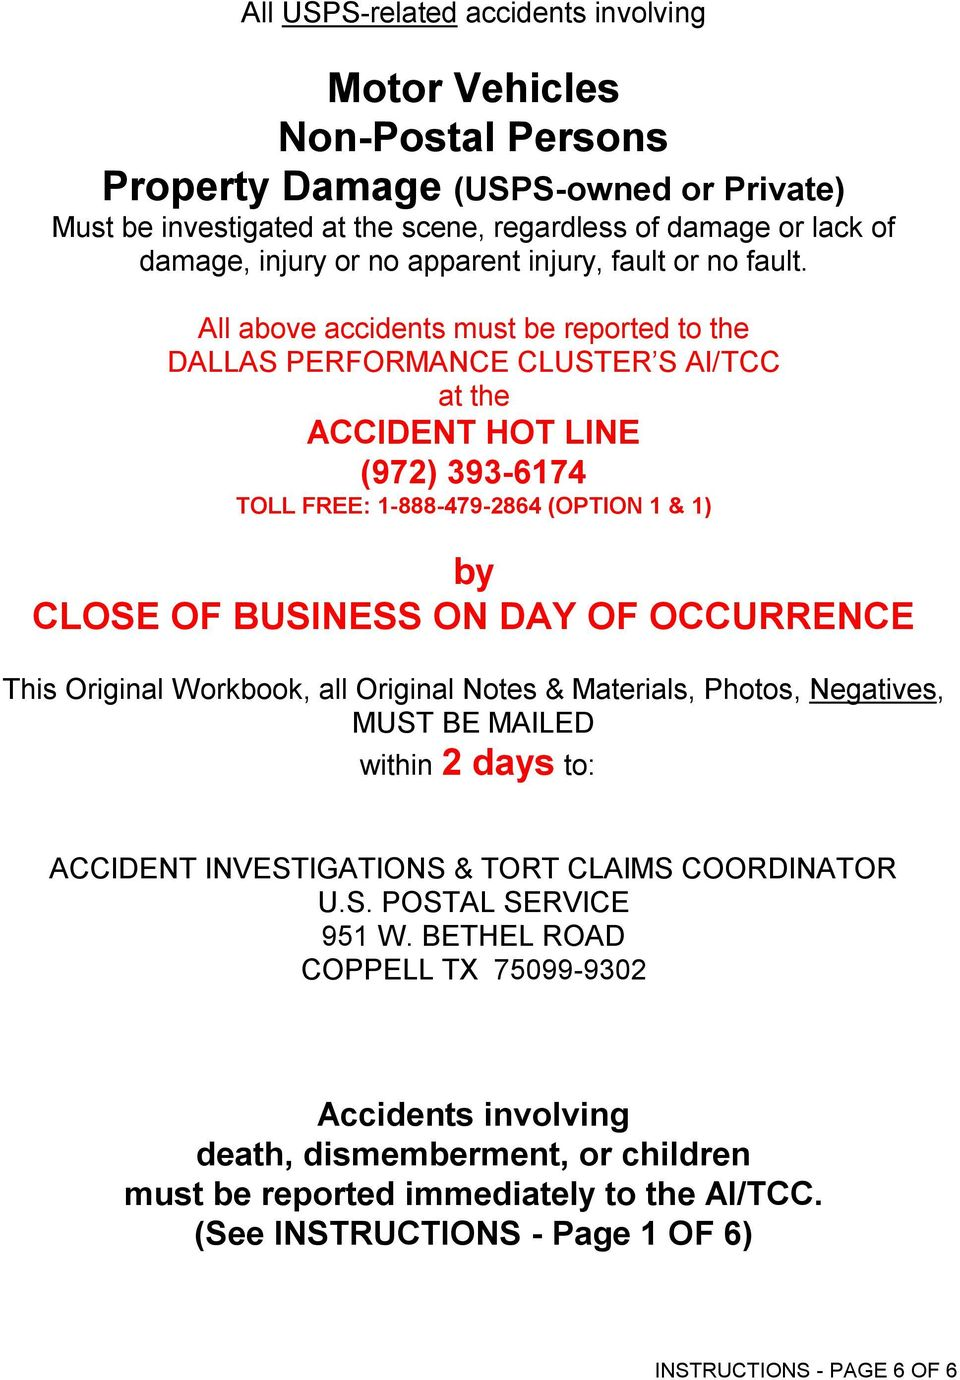 All above accidents must be reported to the DALLAS PERFORMANCE CLUSTER S AI/TCC at the ACCIDENT HOT LINE (972) 393-6174 TOLL FREE: 1-888-479-2864 (OPTION 1 & 1) by CLOSE OF BUSINESS ON DAY OF